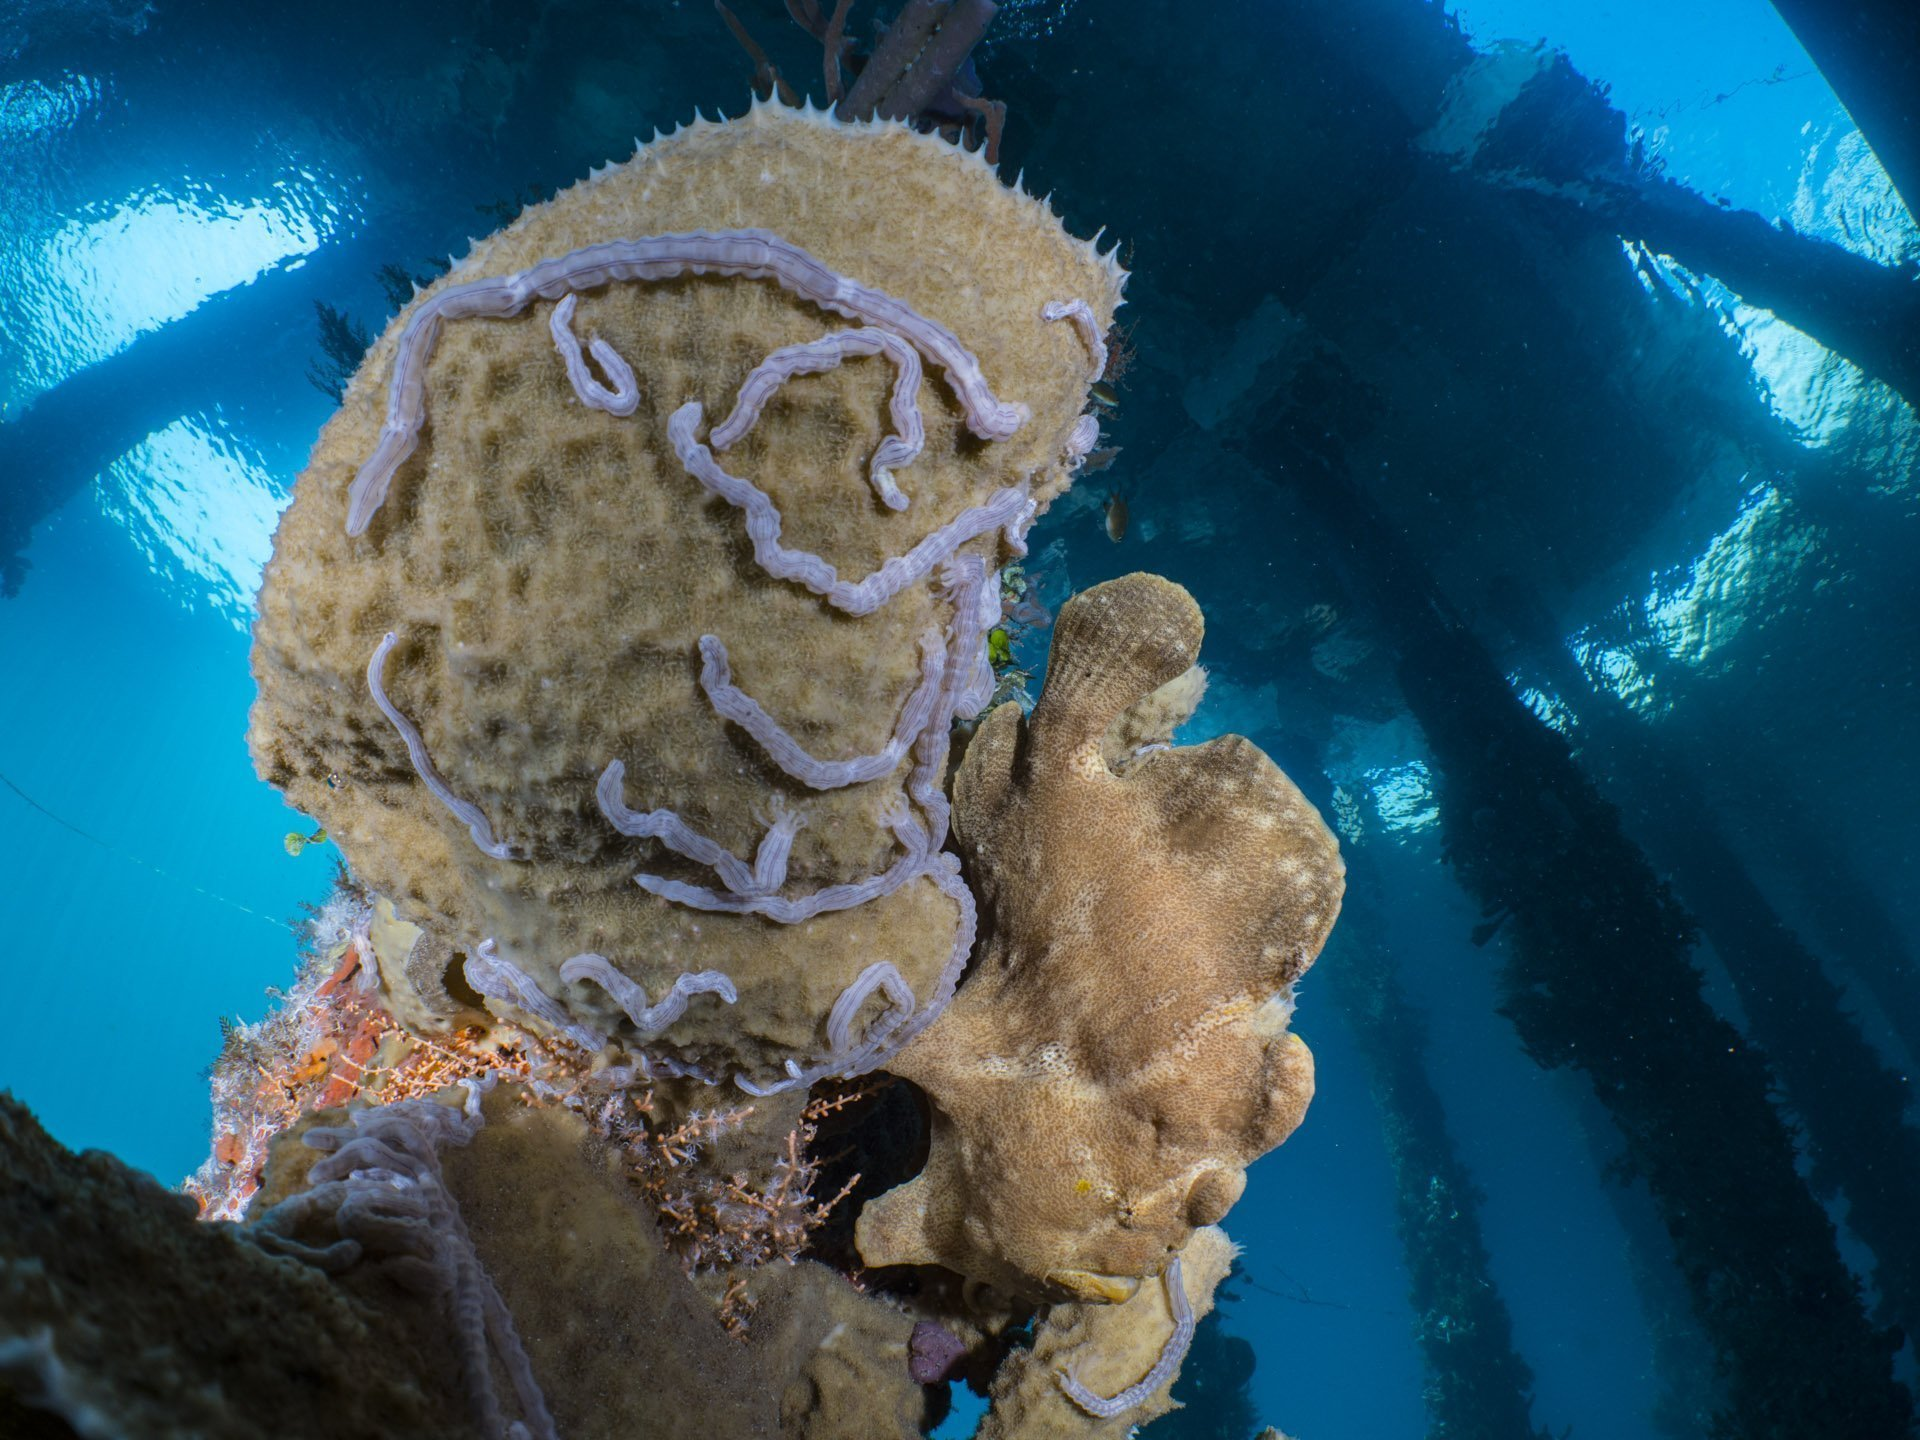 Giant frogfish on jetty in Alor